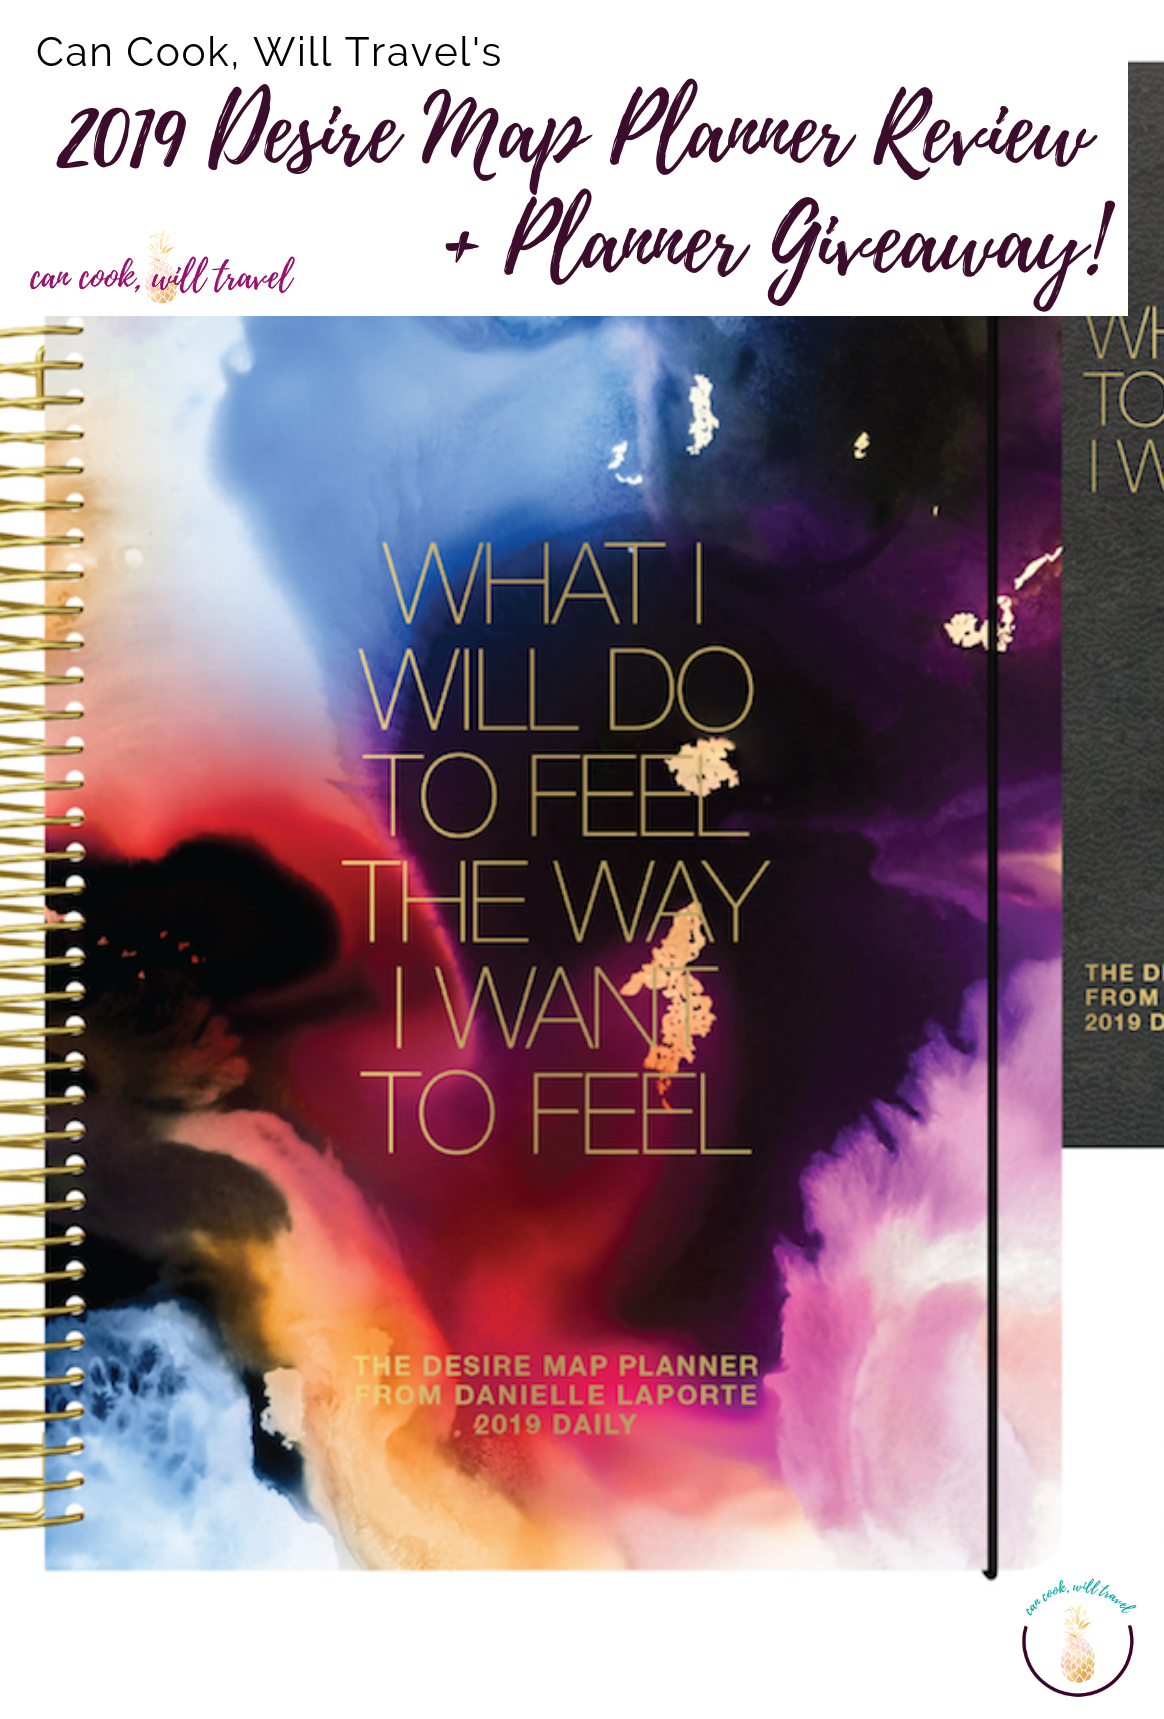 2019 Desire Map Planner Review & Giveaway - Can Cook, Will Travel on